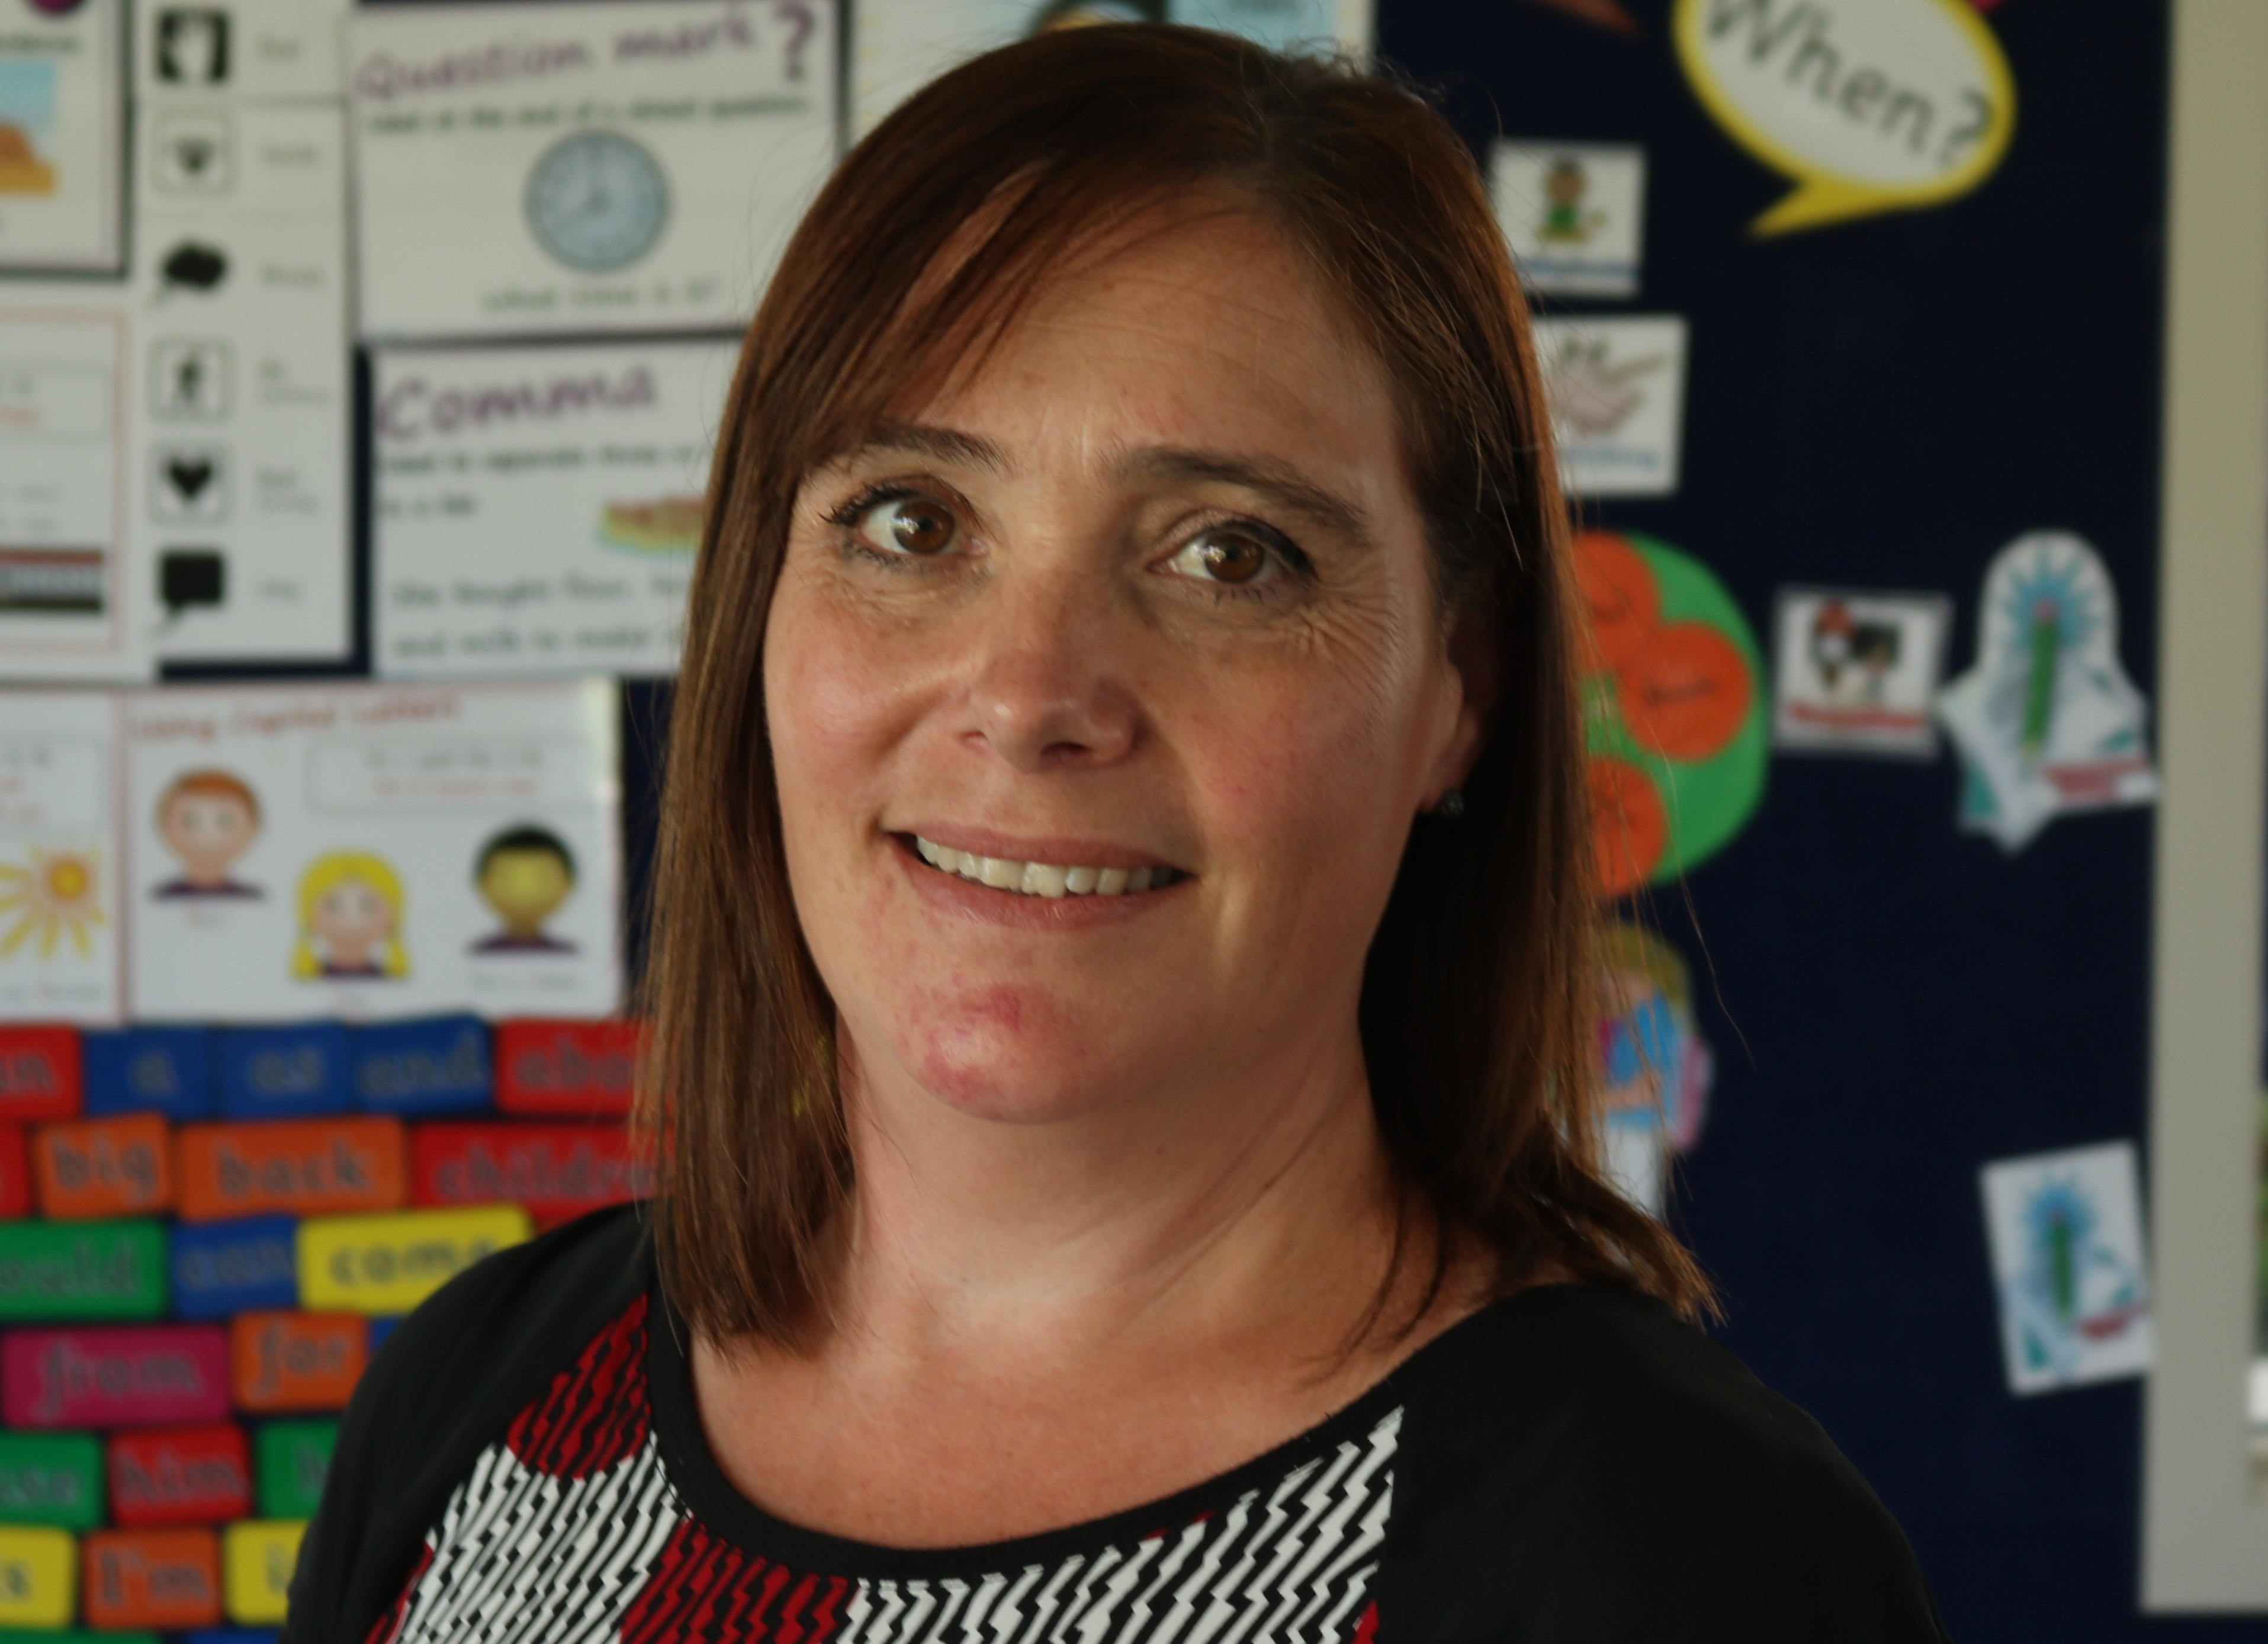 New principal glad to take over school in good heart